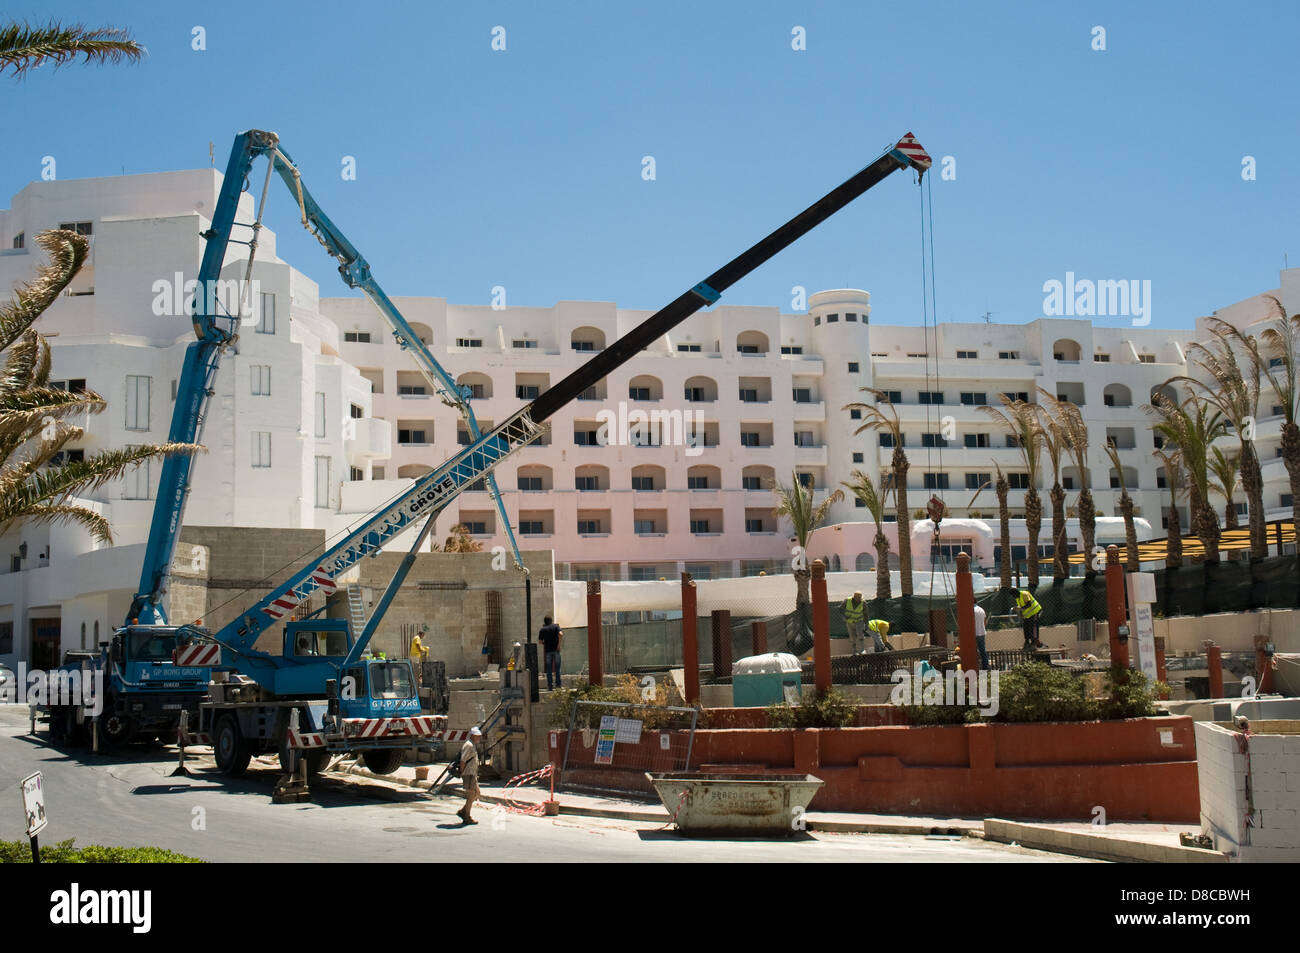 A large hotel in Bugibba Malta has construction work being carried out in its grounds - Stock Image